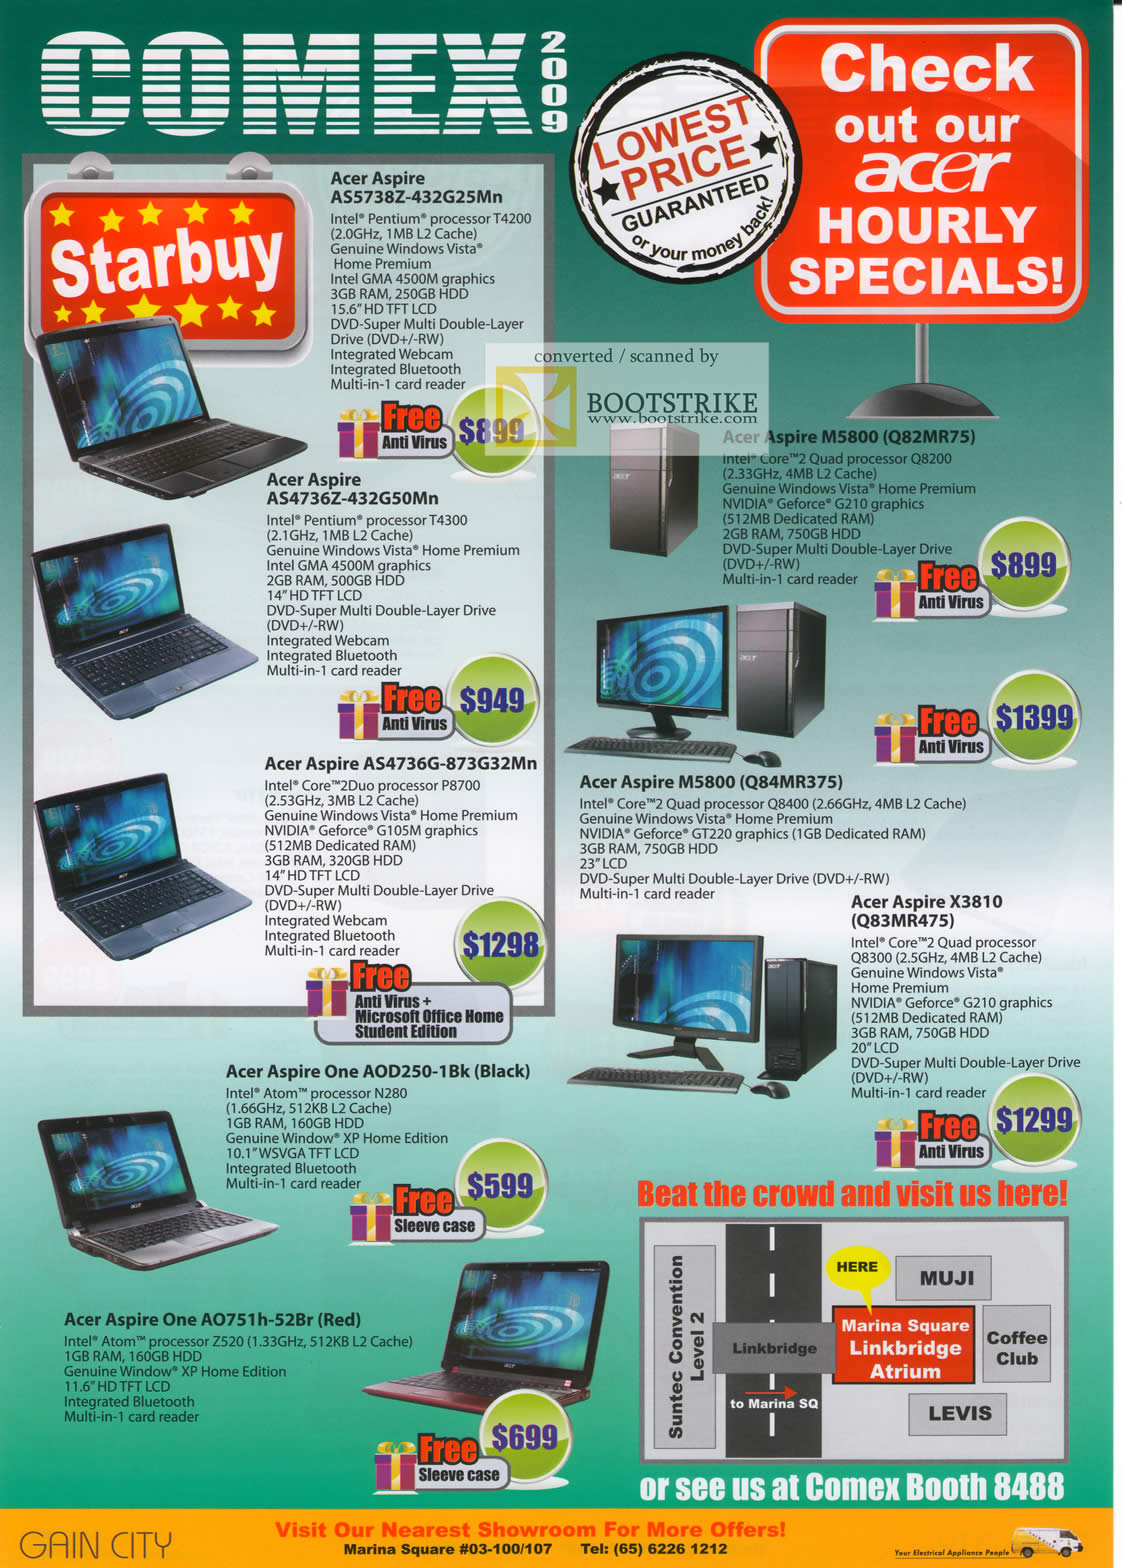 Comex 2009 price list image brochure of Acer Aspire Notebooks AS5738Z AS4736Z M5800 One AOD250 Desktop X3810 M5800